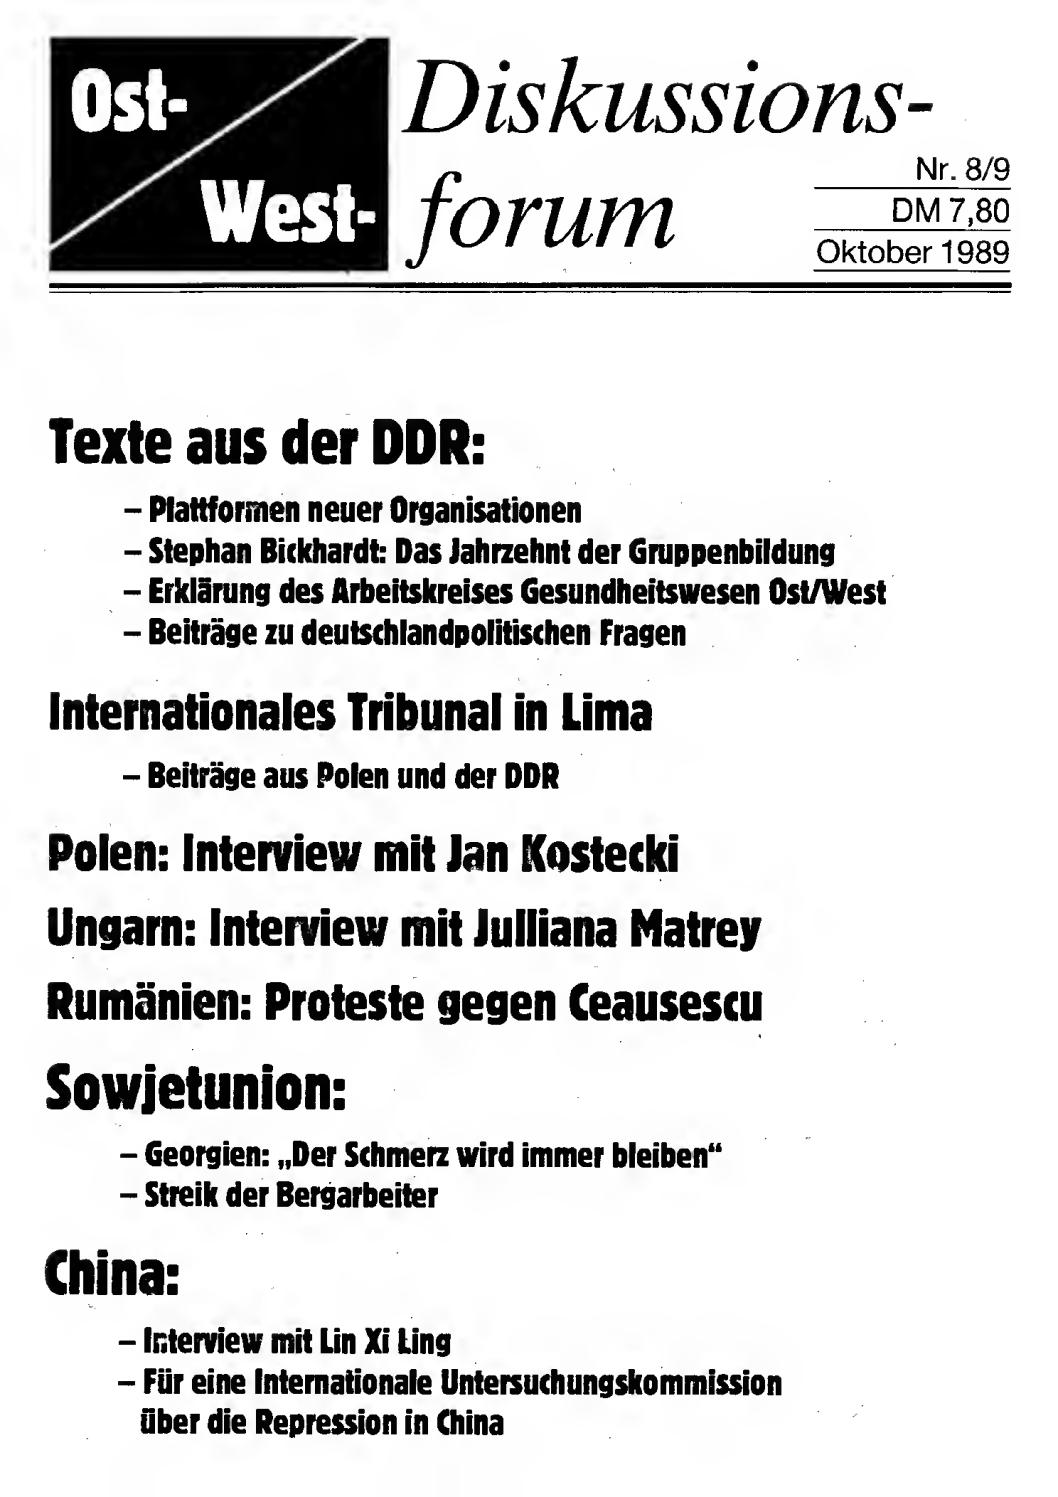 1989-10 Ost-West-Diskussionsforum Nr 8-9 by IFM-Archiv Sachsen e. V ...